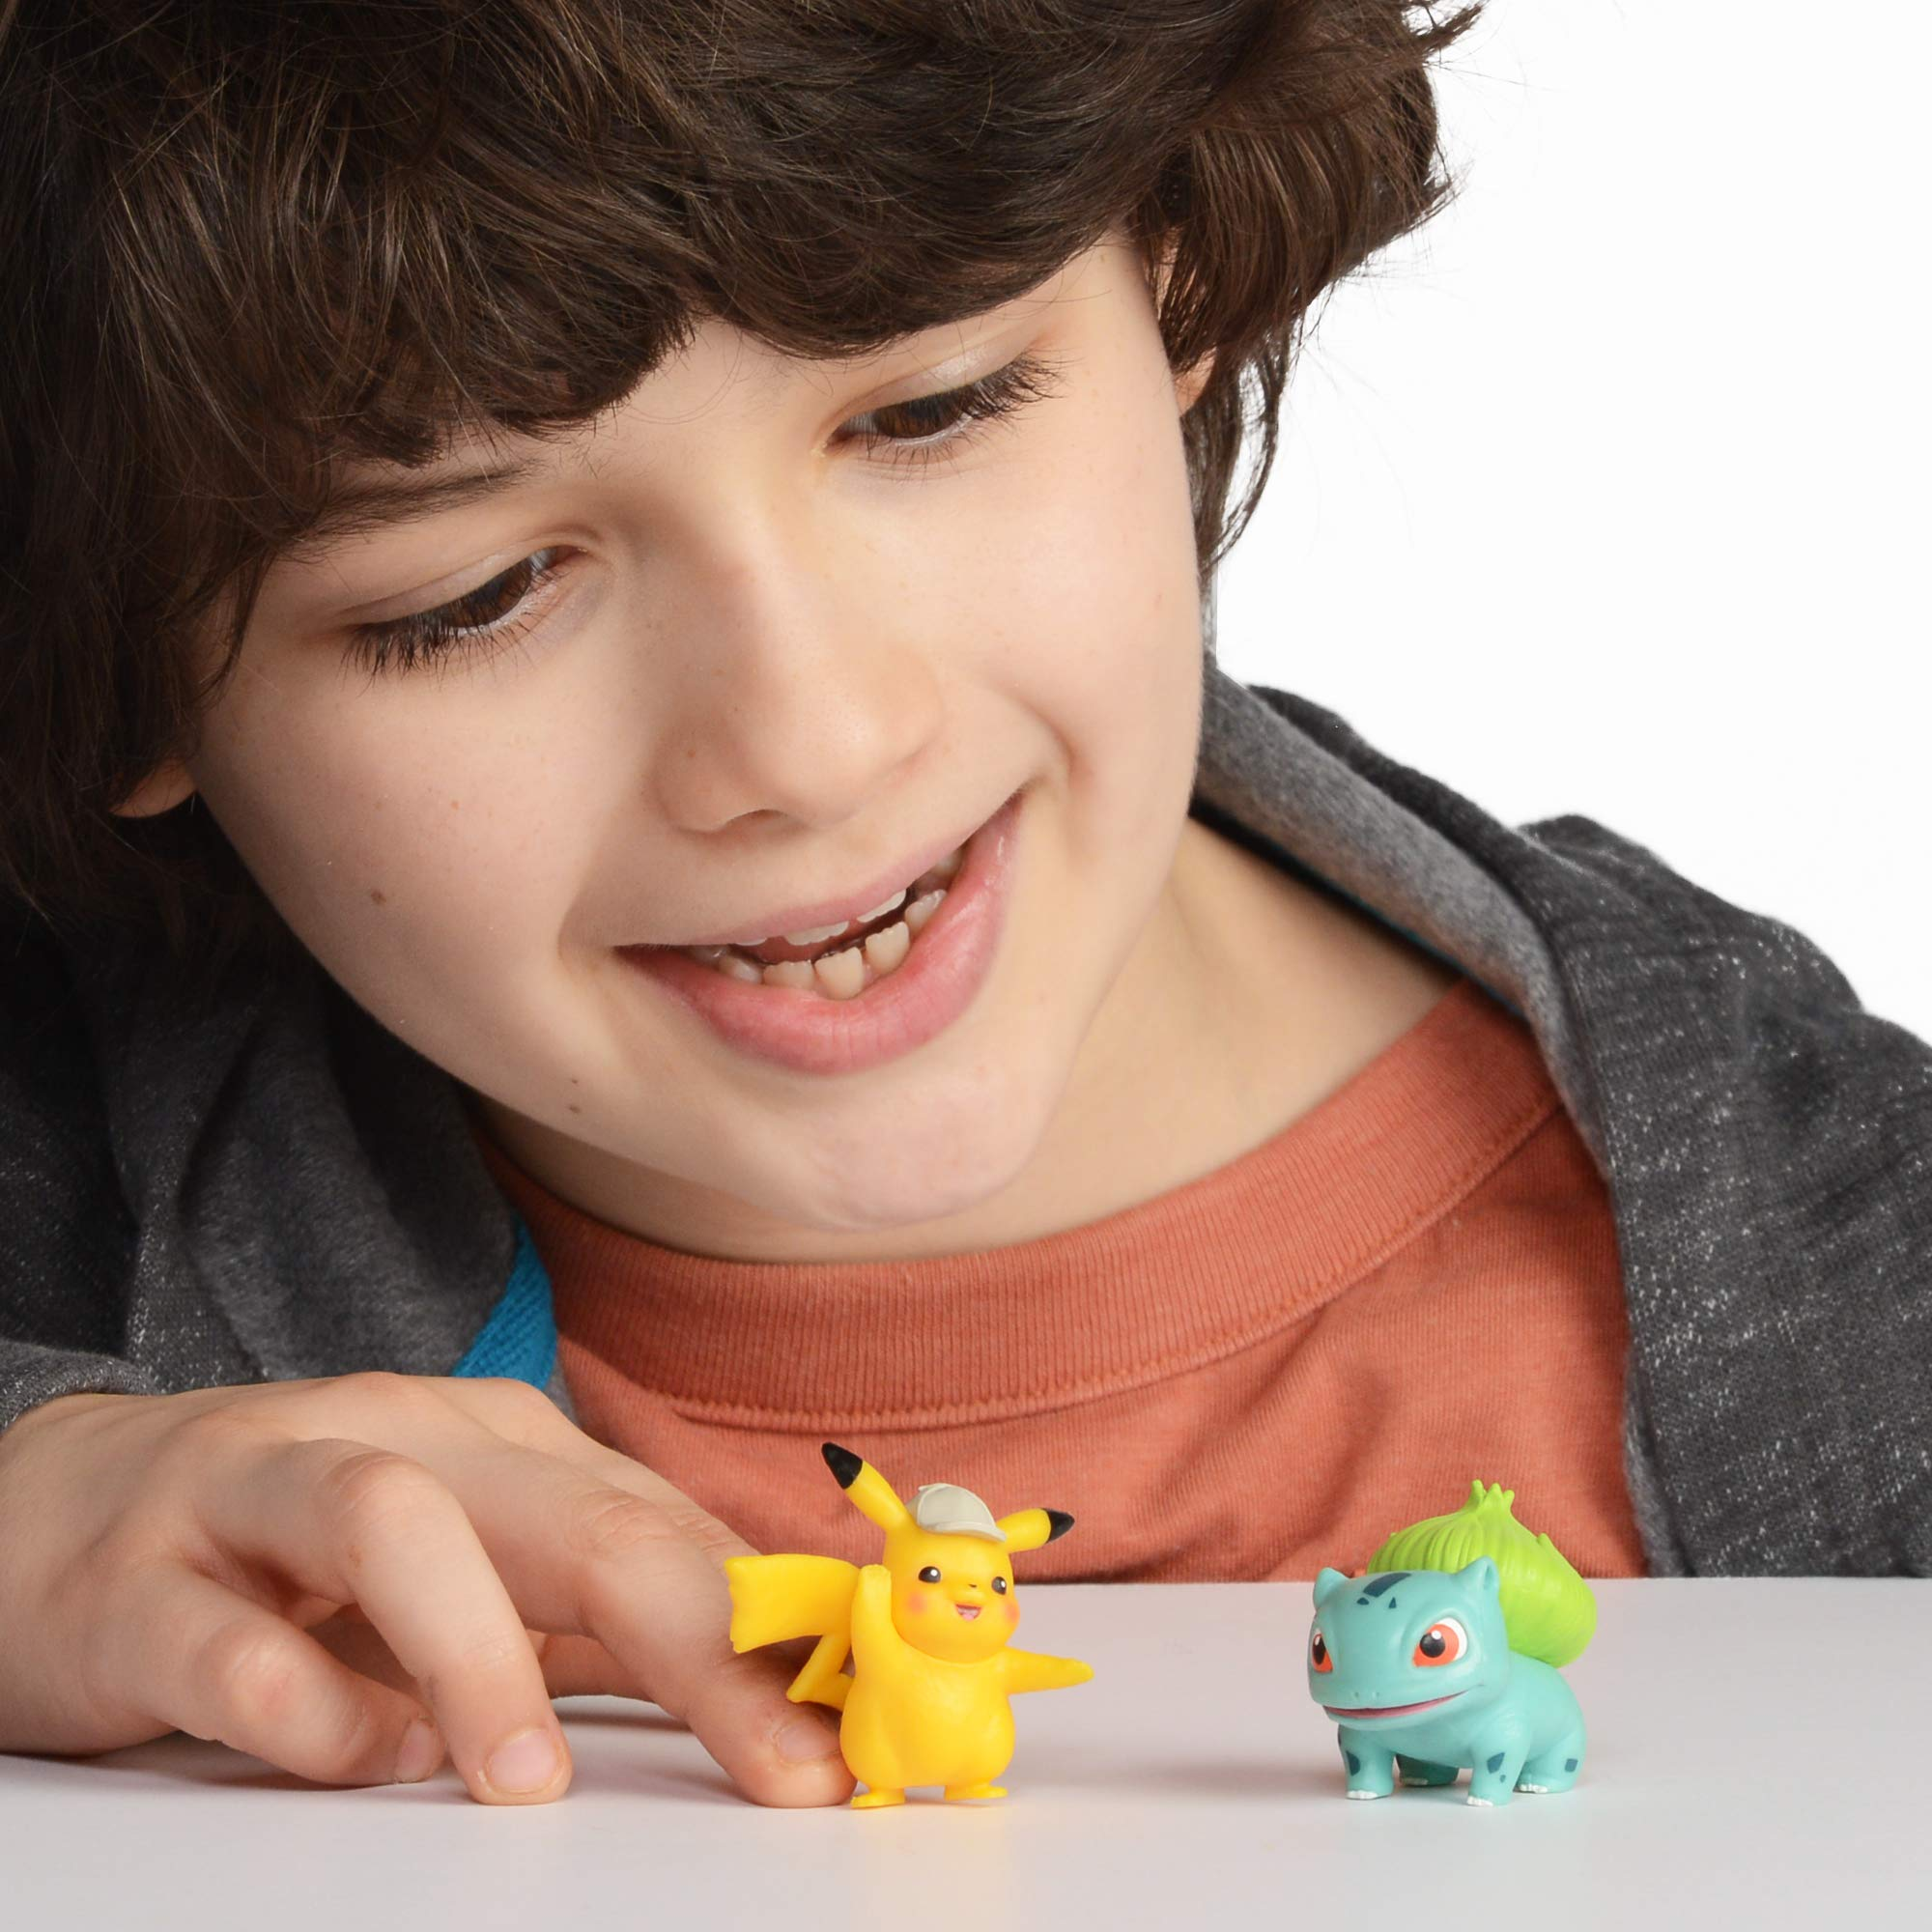 Detective Pikachu Battle Action Figure 6-Pack - Includes two 2'' Detective Pikachu Figures, 2'' Psyduck, 2'' Bulbasaur, 3'' Mewtwo, and 3'' Ludicolo by Pokemon (Image #5)